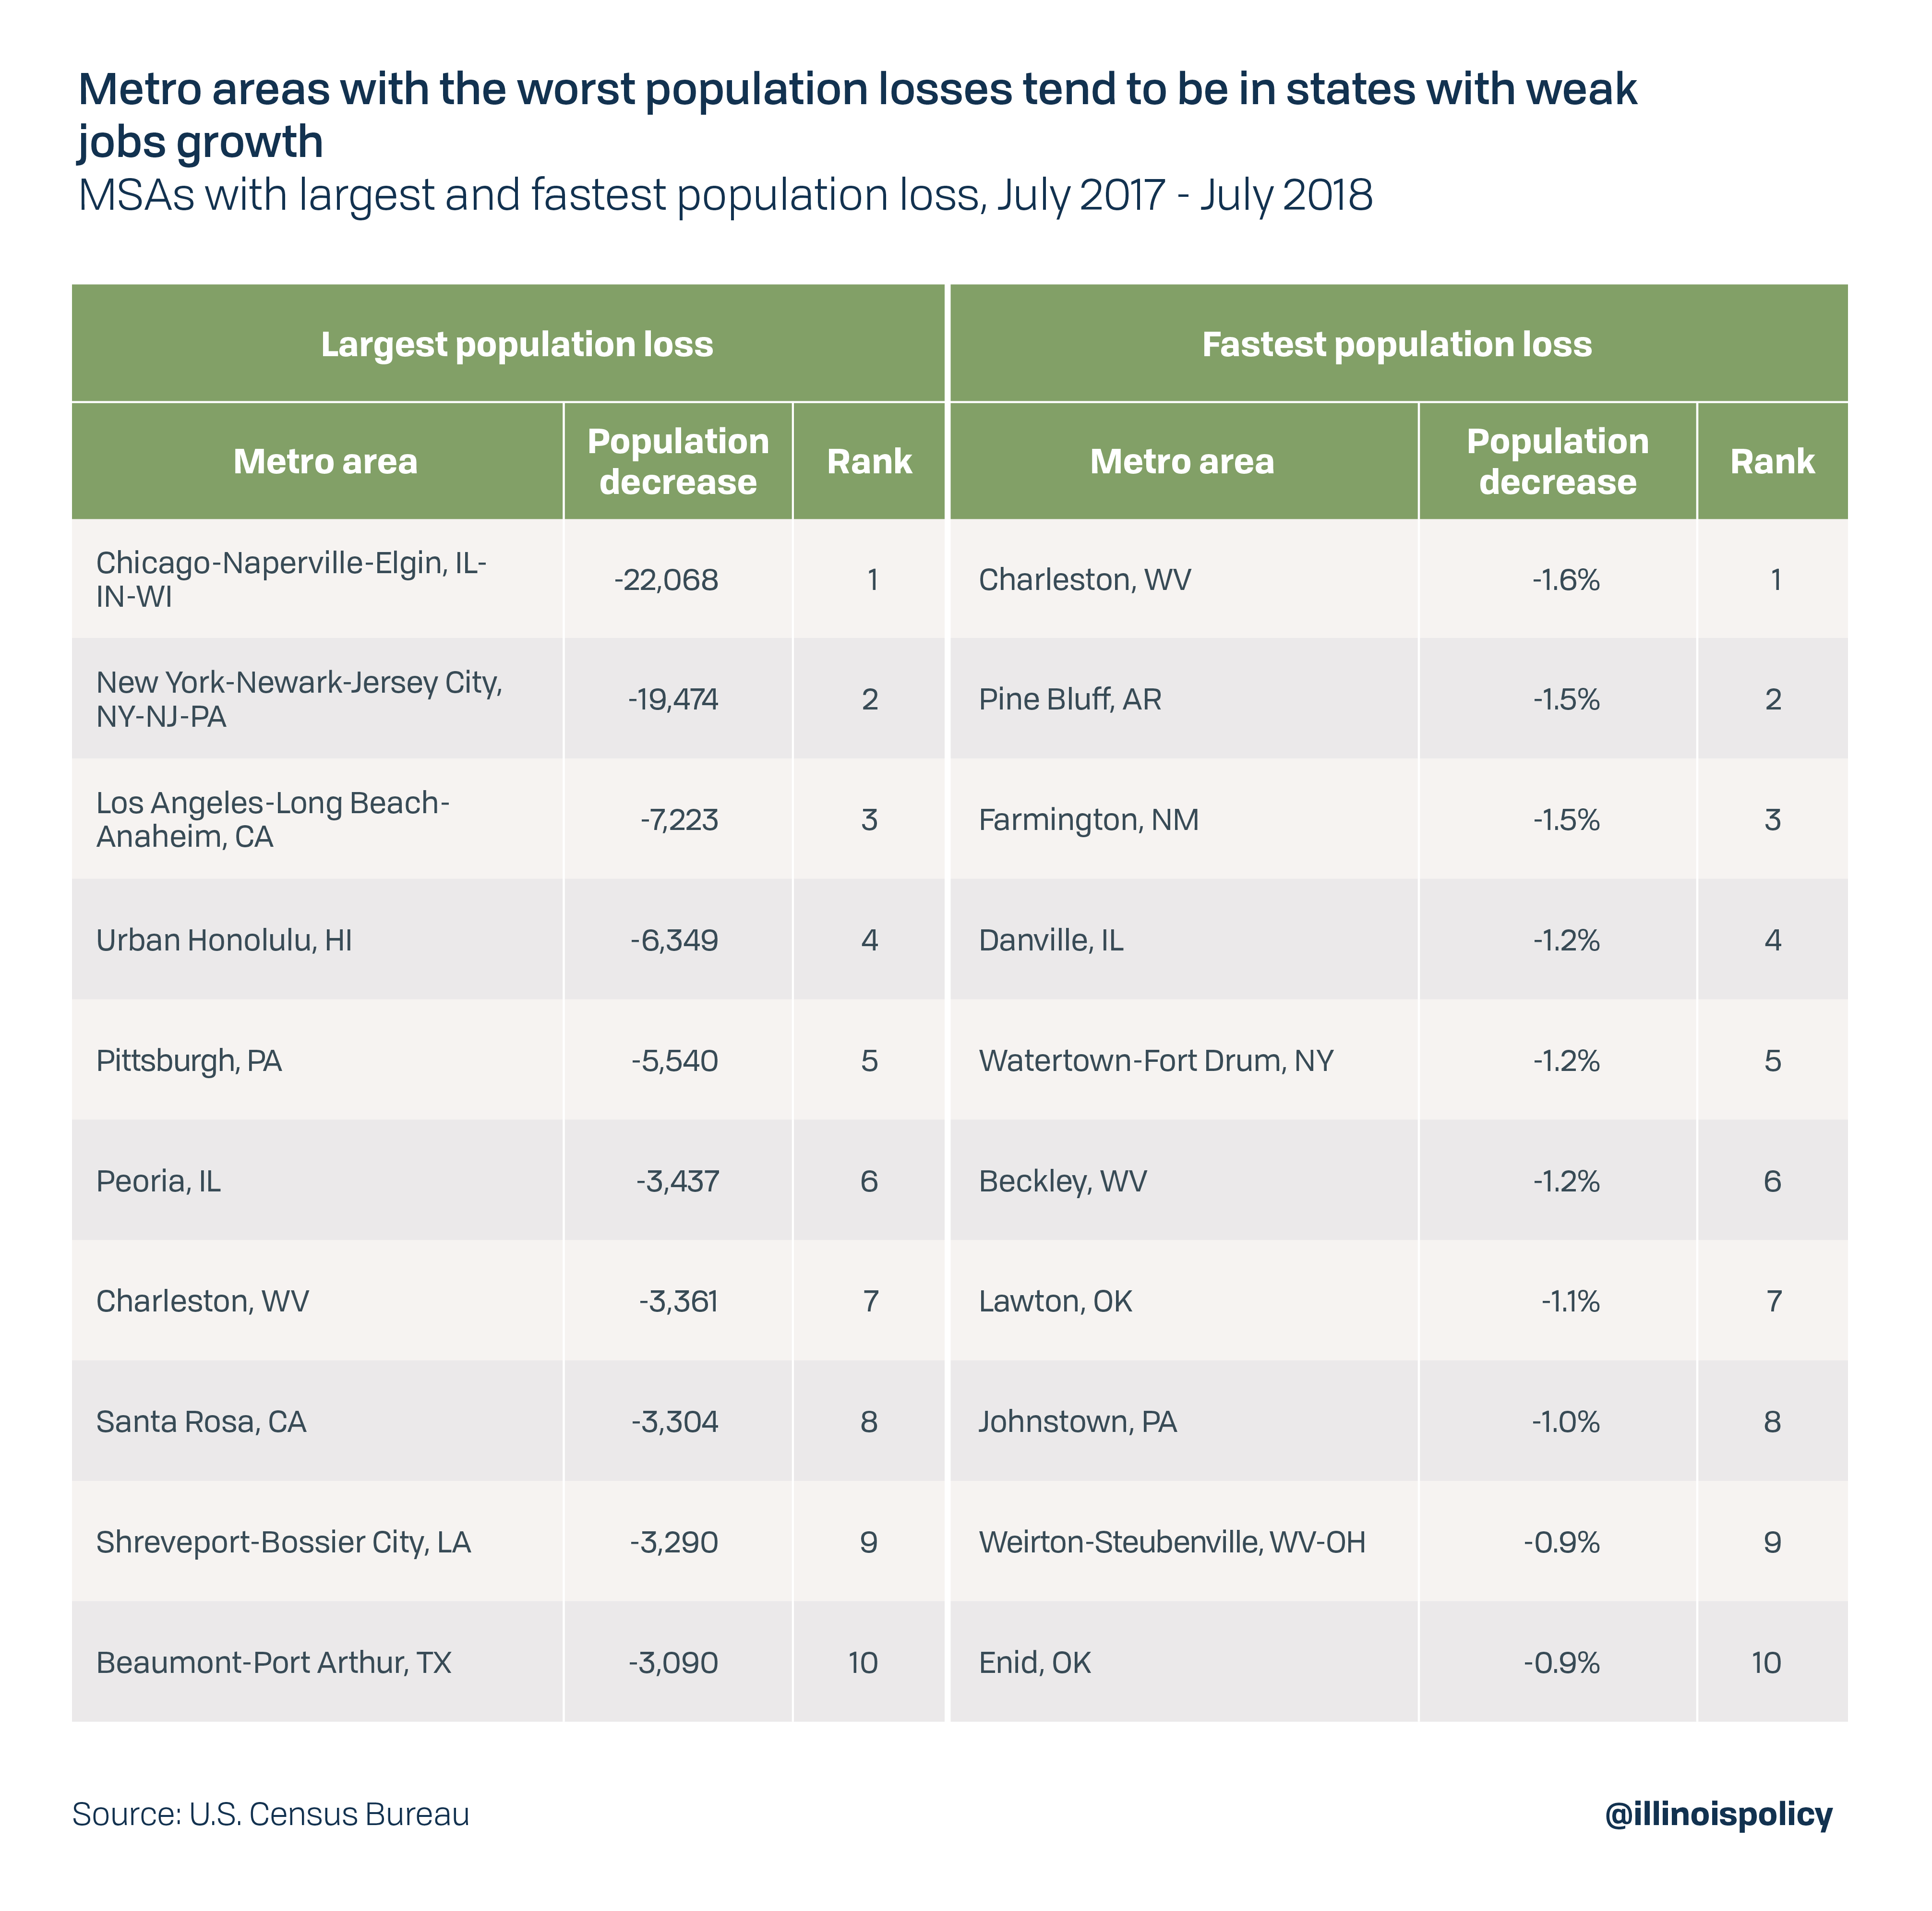 Metro areas with the worst population loss tend to be in high-tax, non-competitive areas